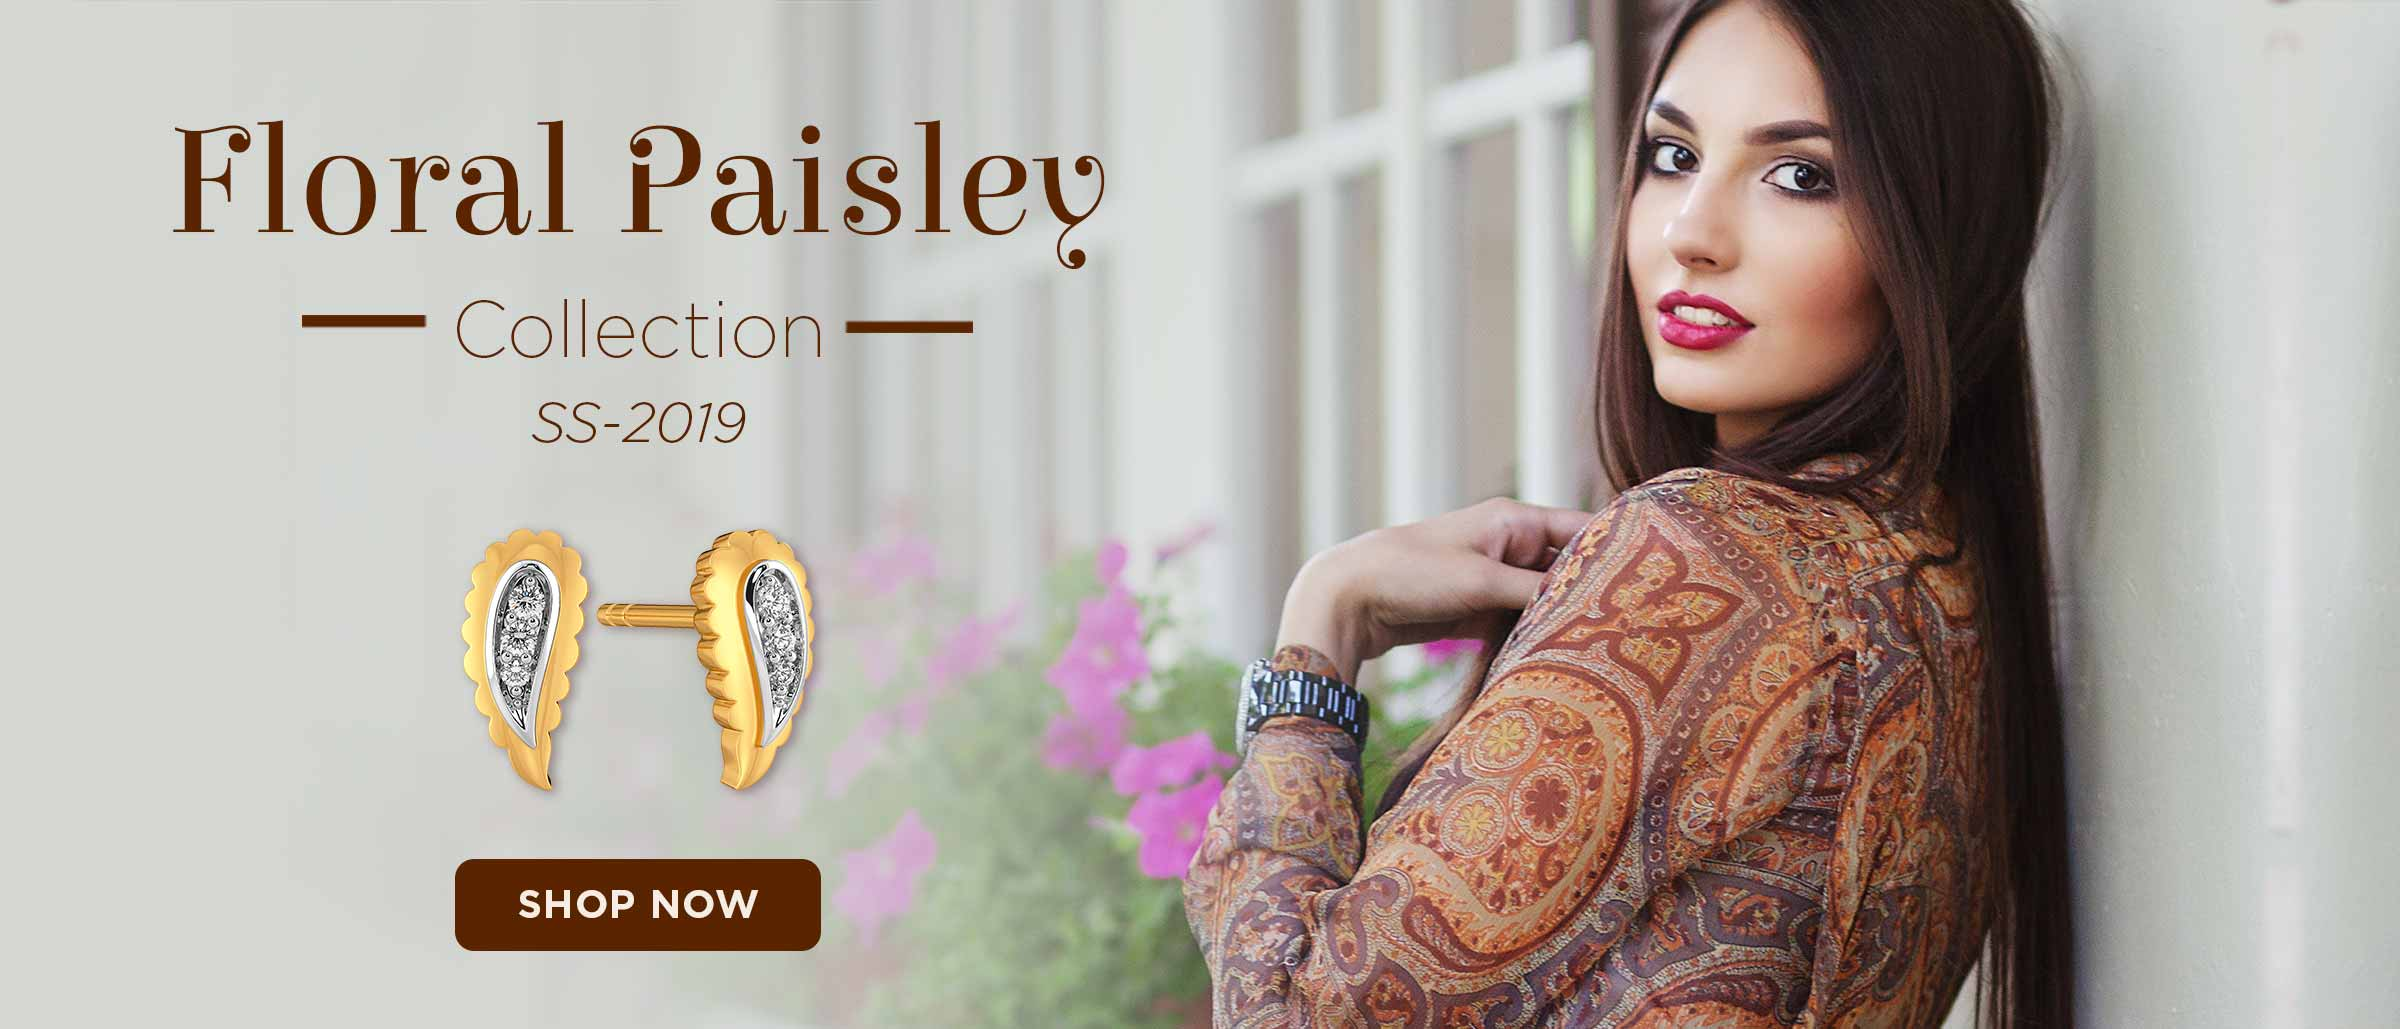 Floral Paisley Collection!